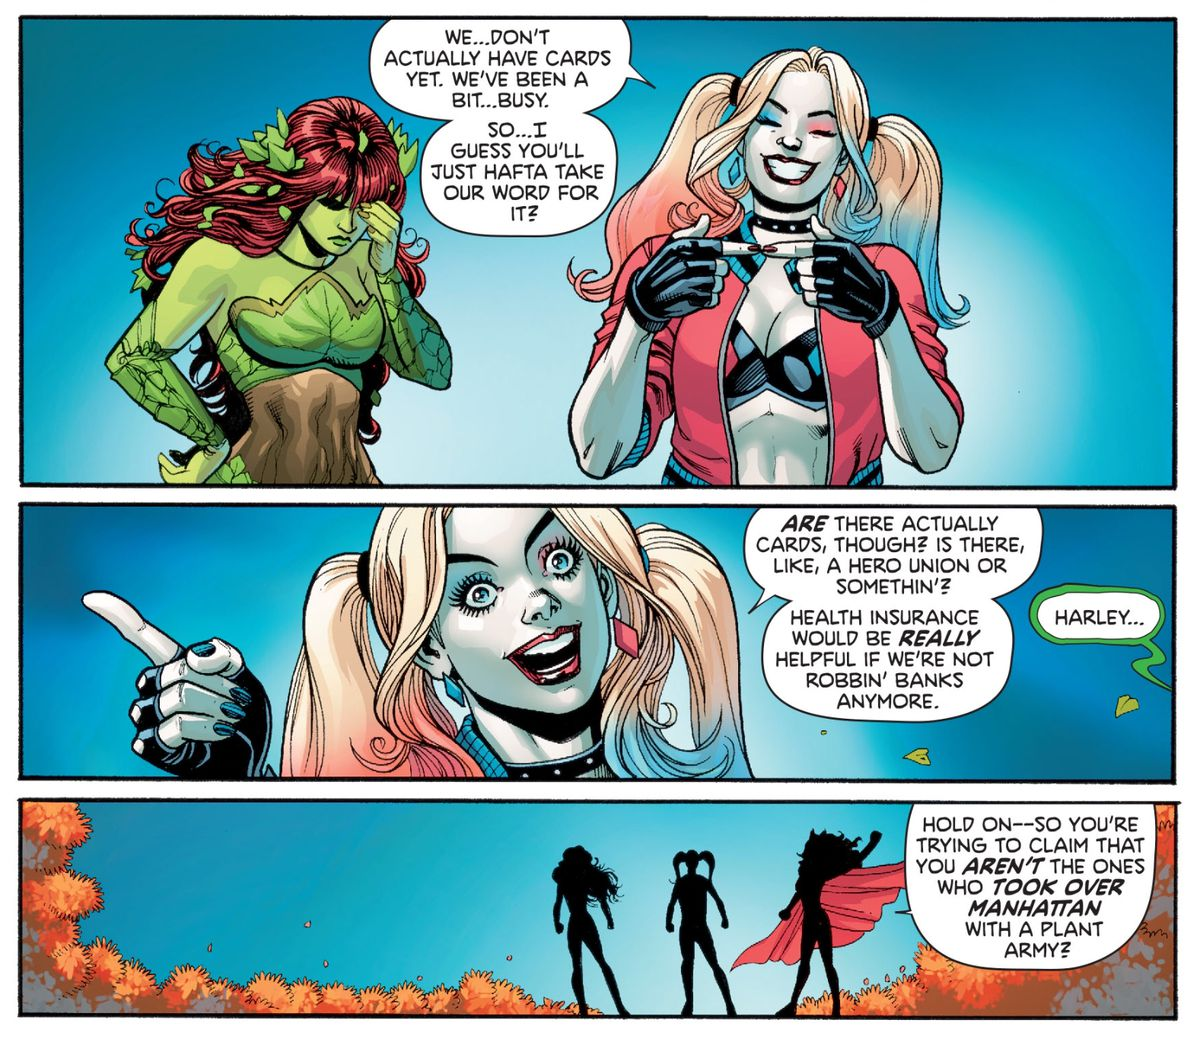 Harley Quinn grills Batwoman about workplace benefits for becoming a superhero, much to Poison Ivy's chagrin, in Harley Quinn & Poison Ivy #5, DC Comics (2020).